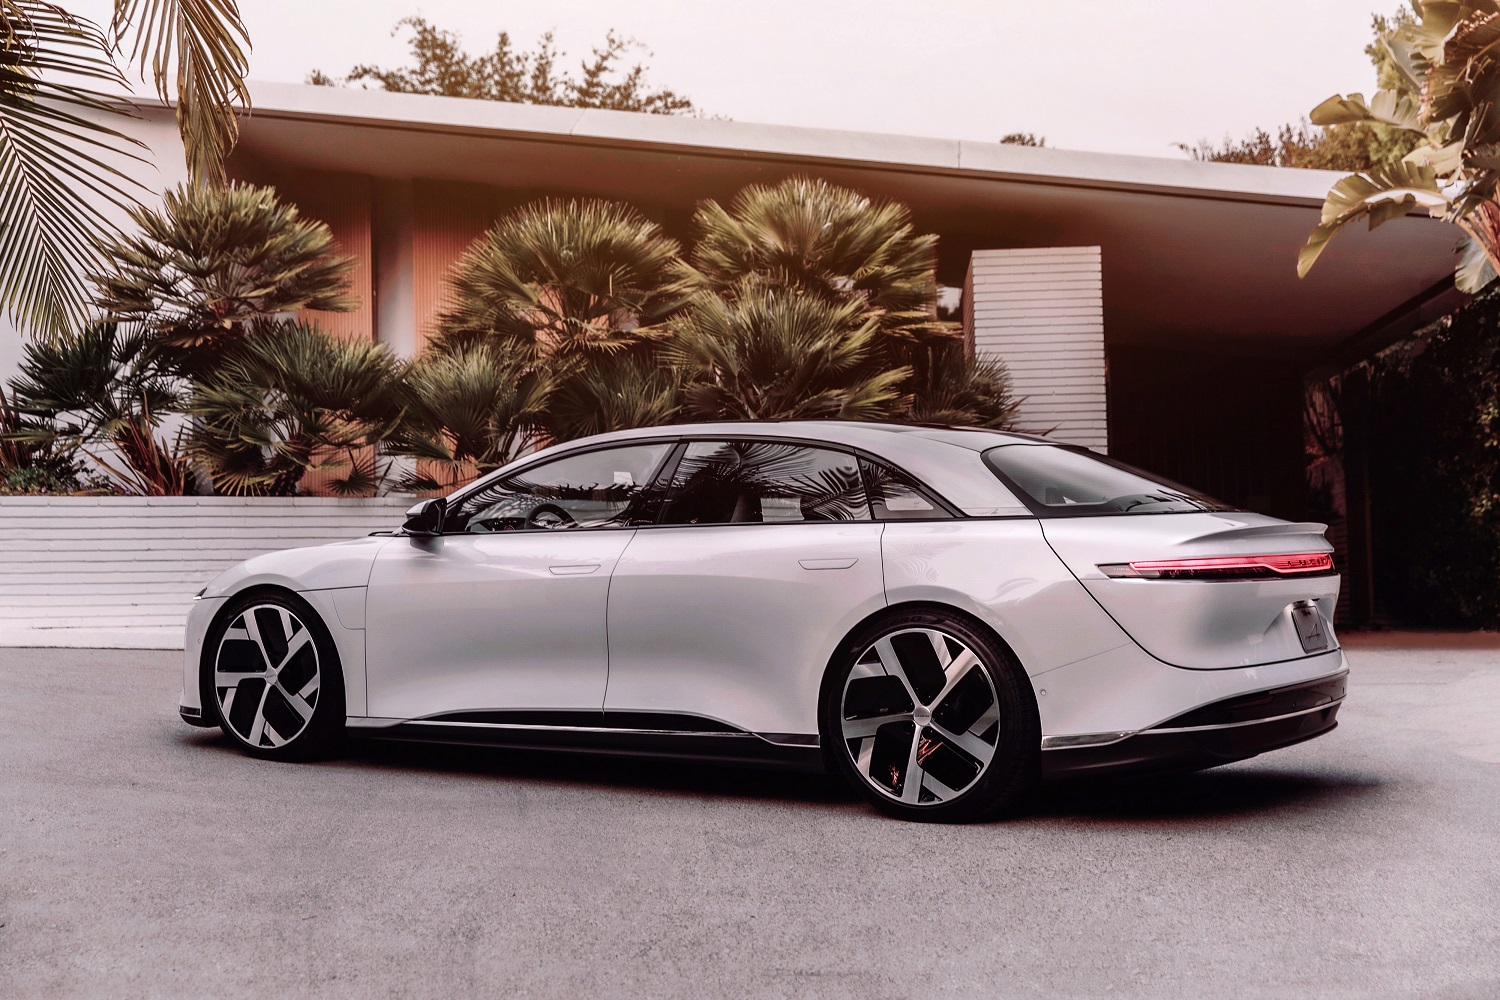 Lucid Air rear shot